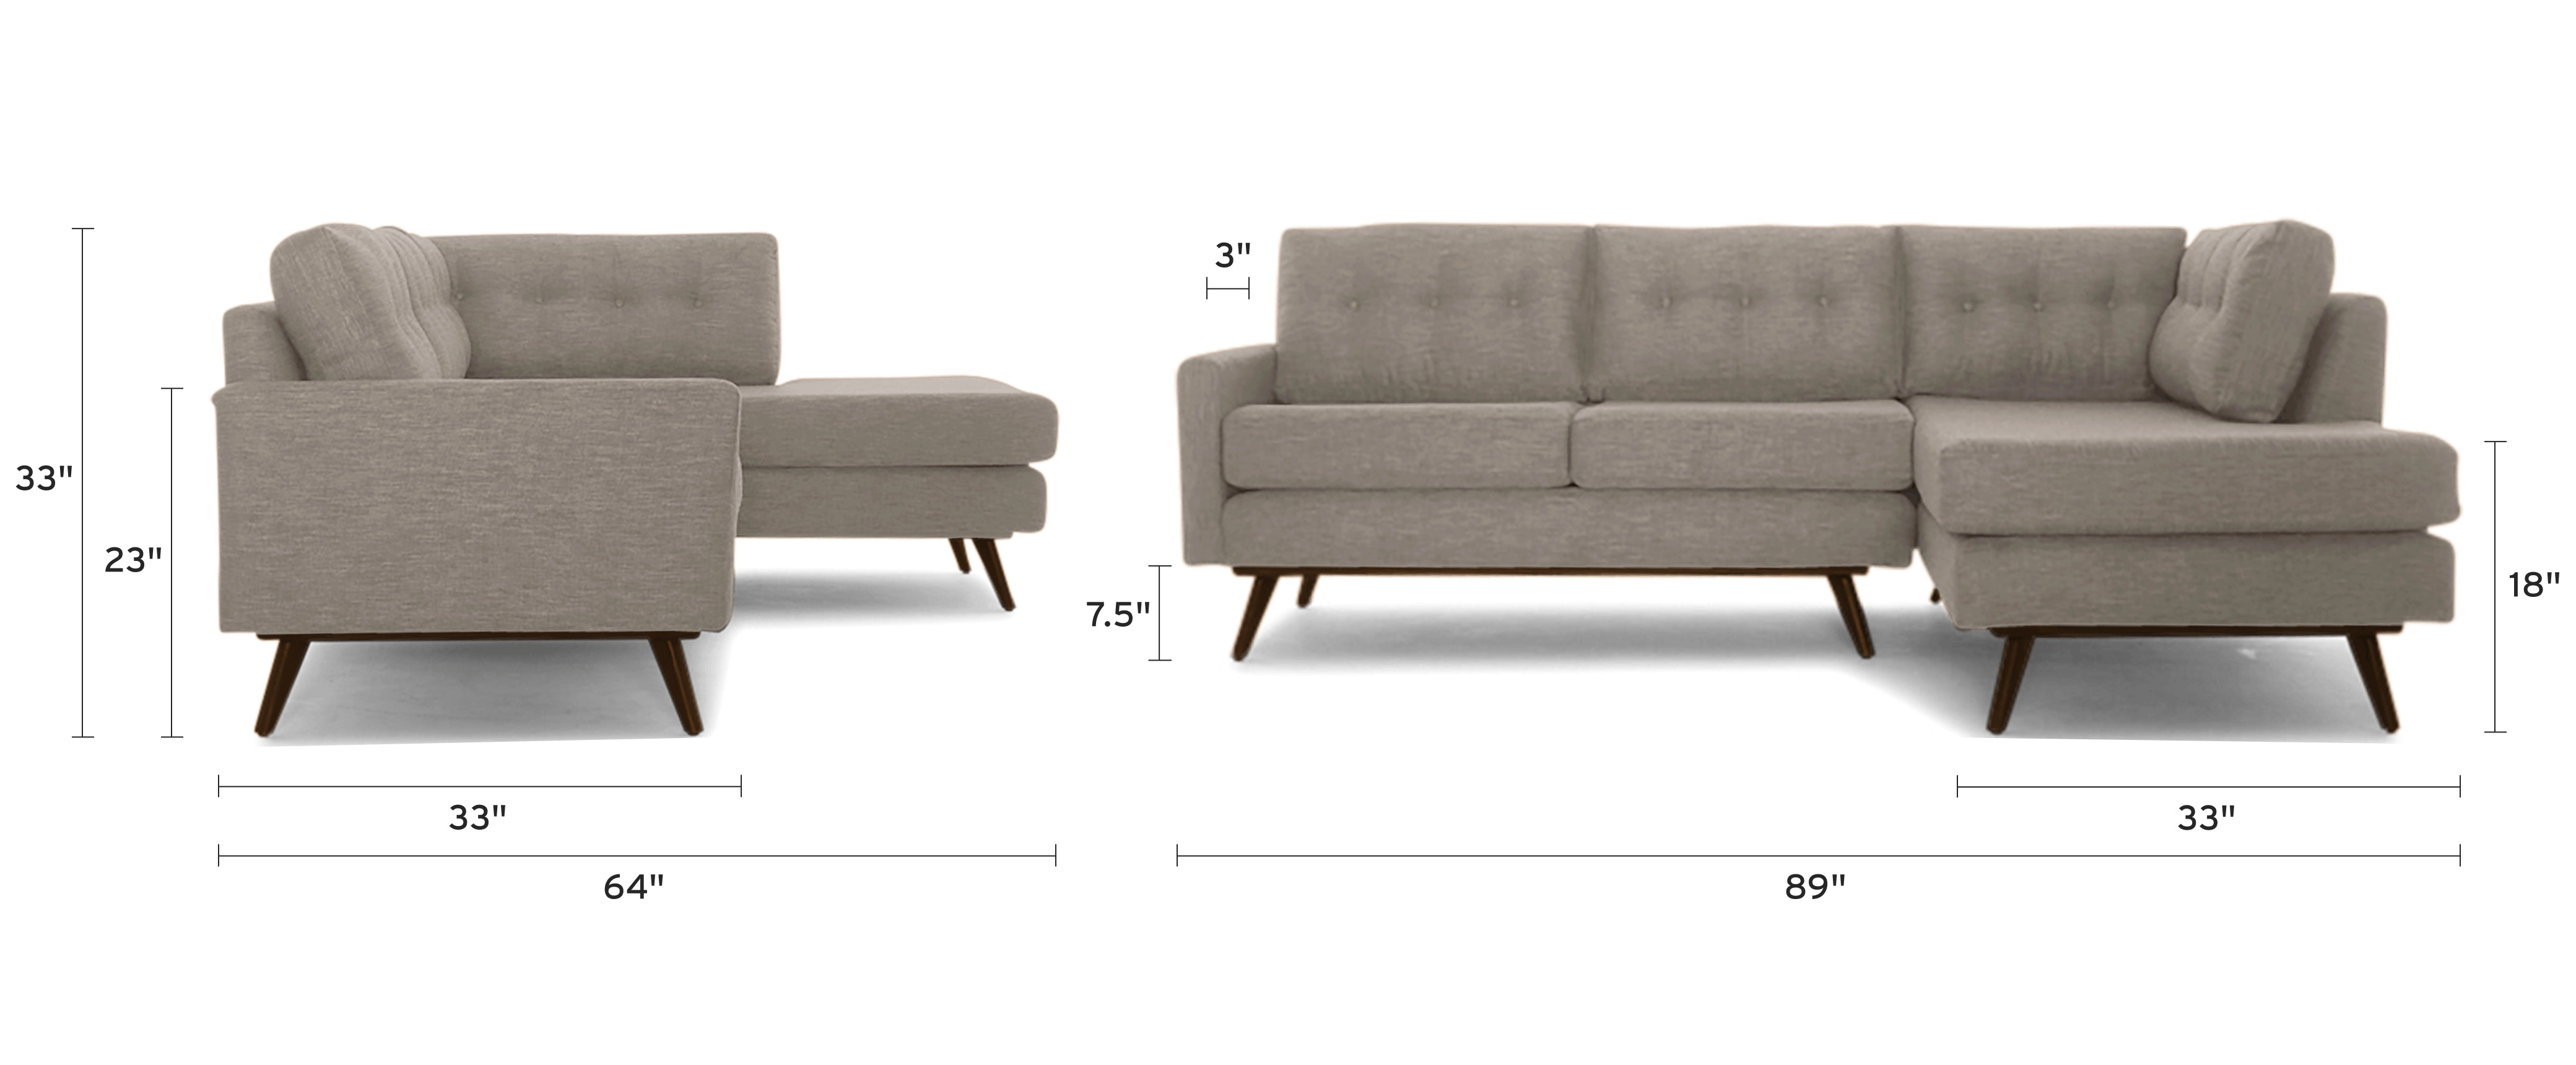 hopson apartment sectional with bumper dimensional image